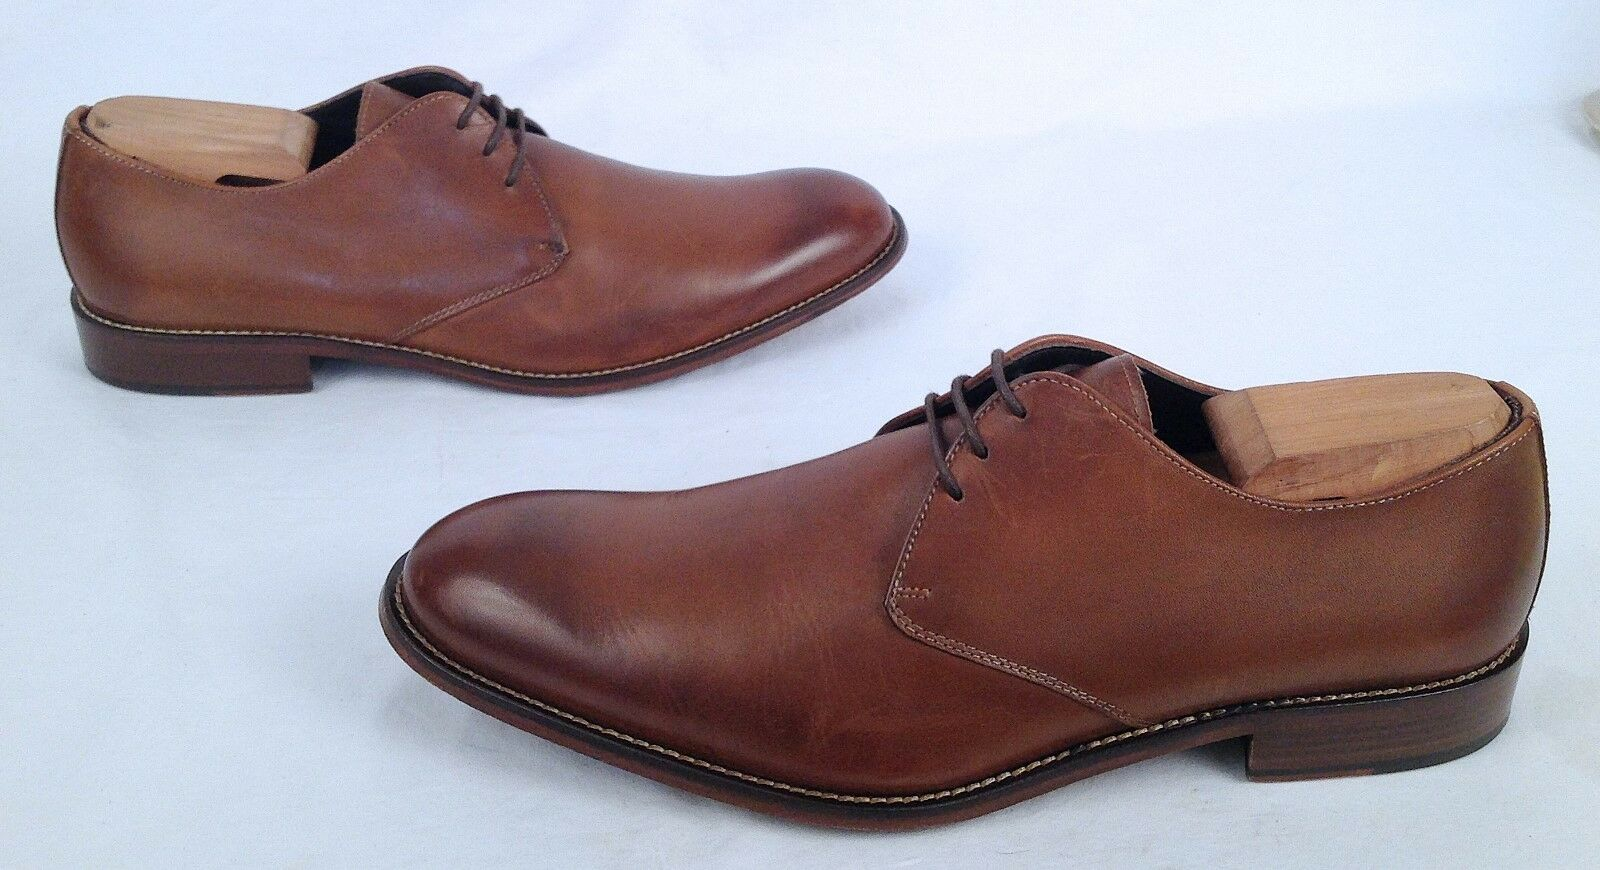 To Boot New York 'Winston' Oxford- Brown- Size 9 M- 6- (J3) Scarpe classiche da uomo